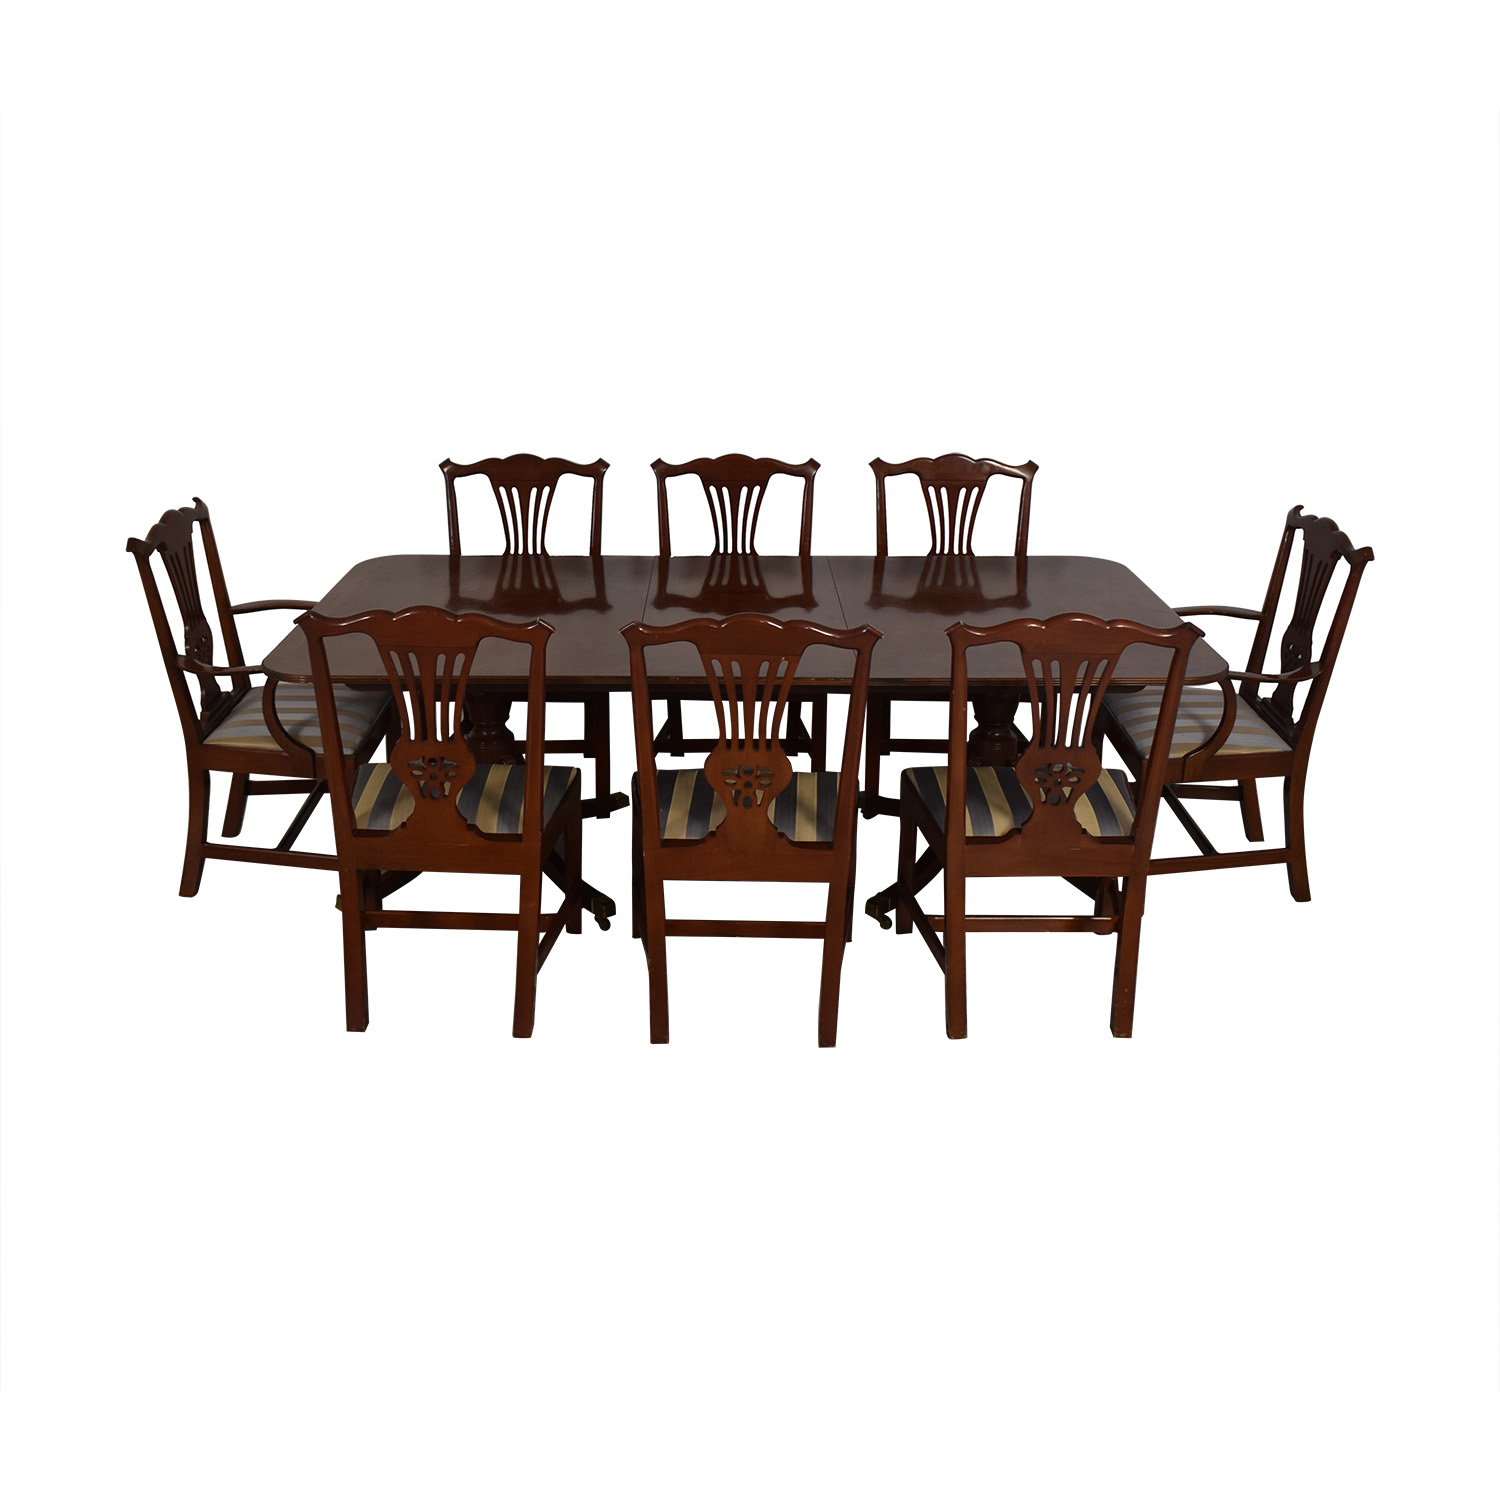 Used Dining Room Table And Chairs 70 Off Baker Furniture Baker Furniture Dining Room Table And Chairs Tables